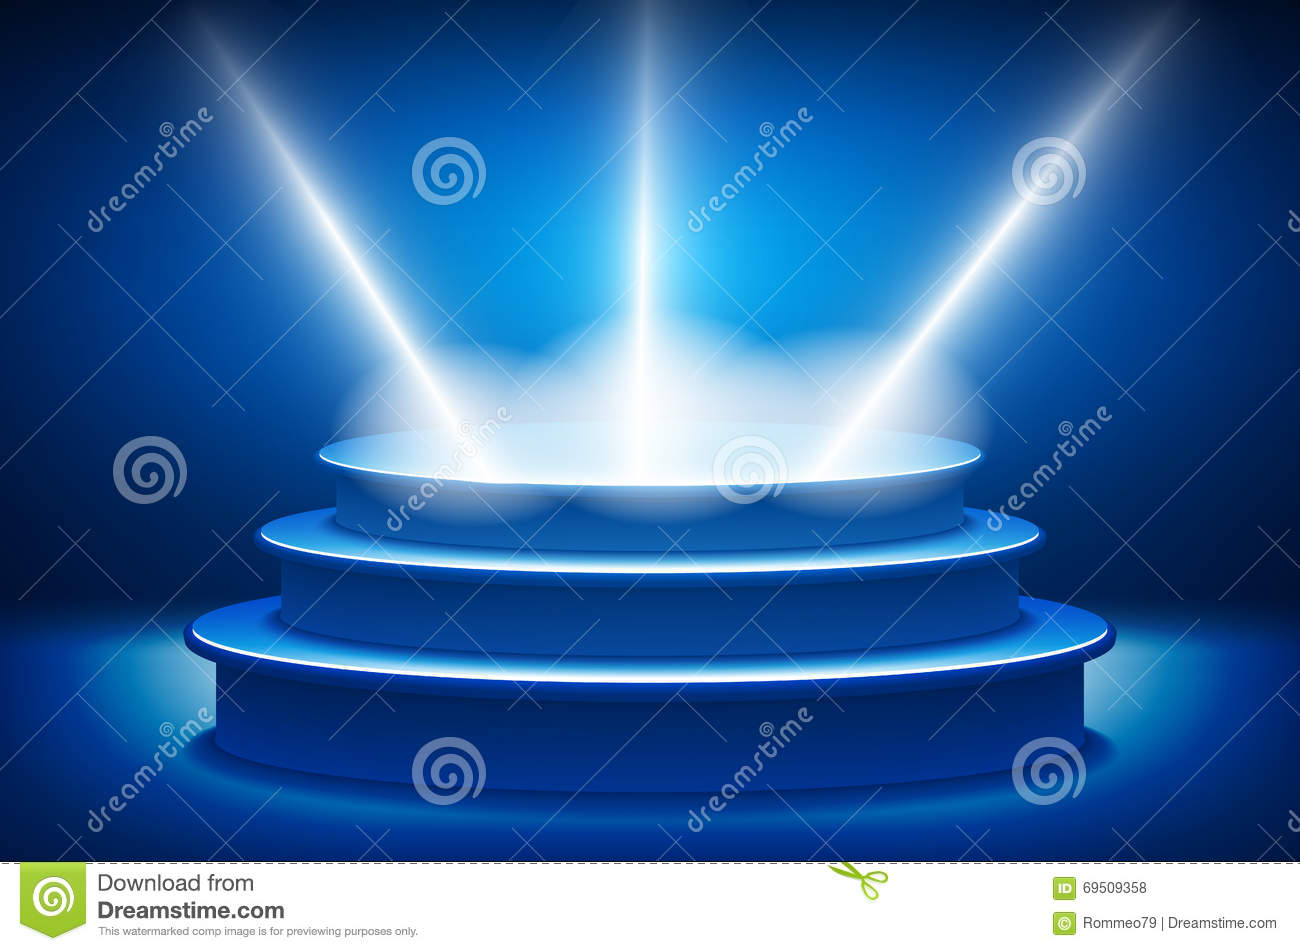 Background With Bright Blue Lights Cartoon Vector